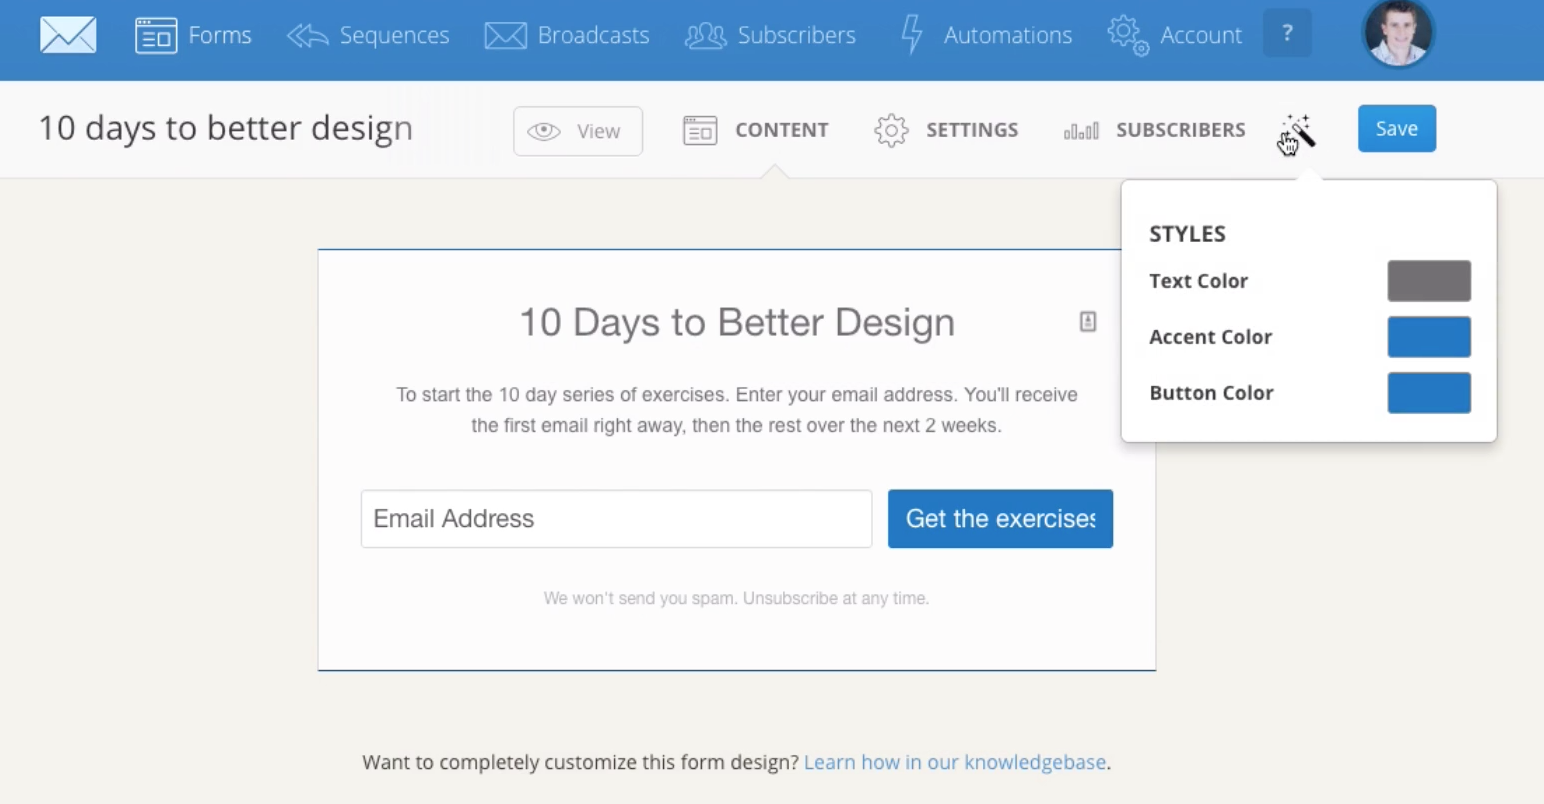 Users can customize the design of their forms in ConvertKit